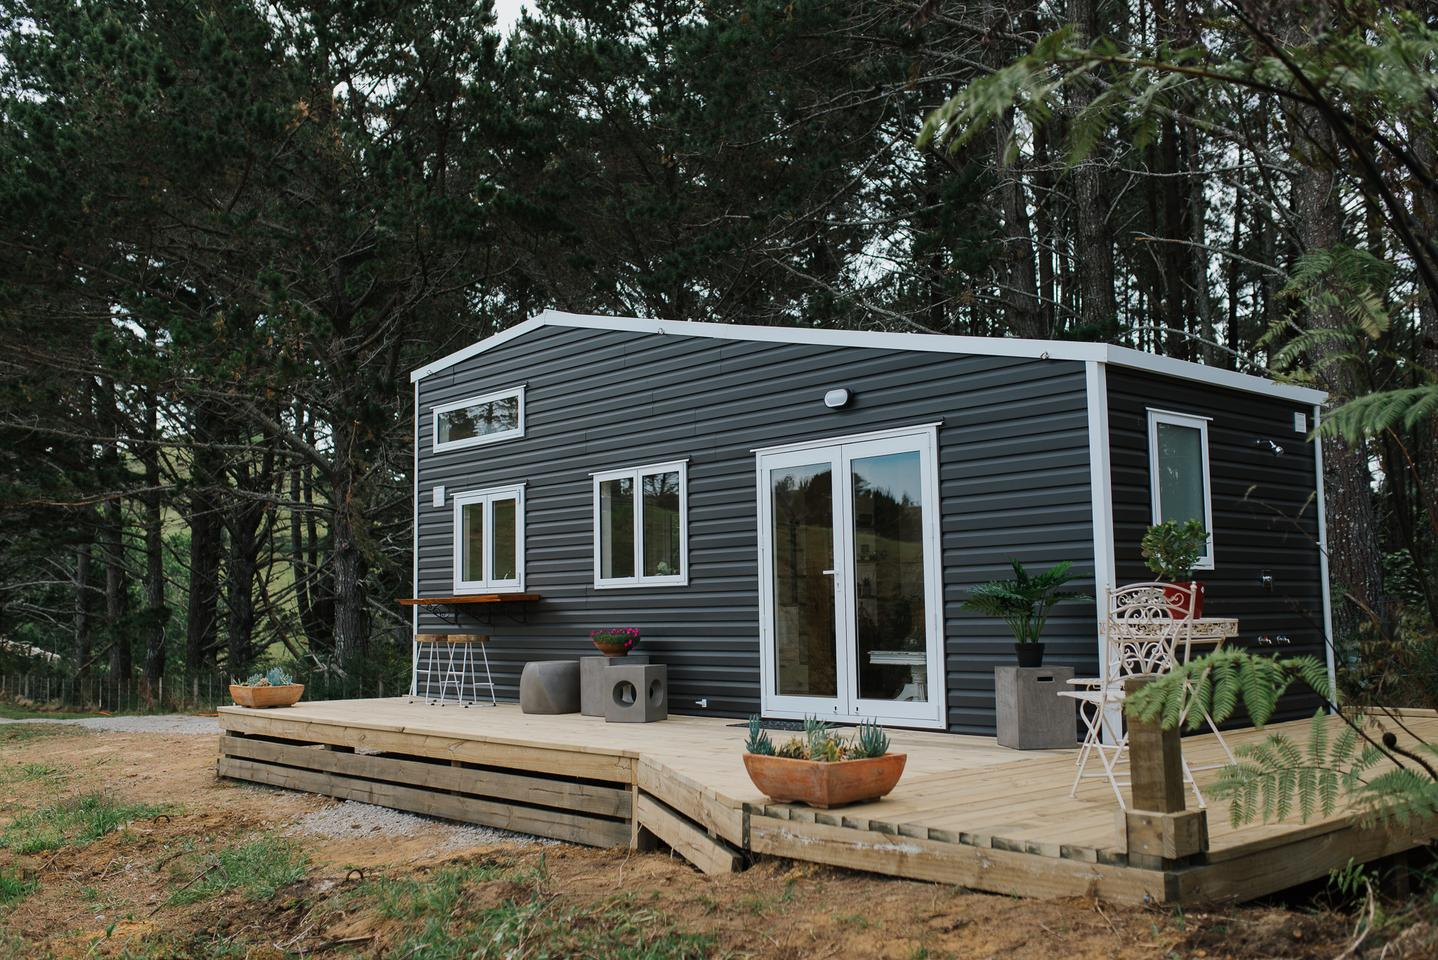 Cherry Picker Tiny House offers spacious interior and choice views